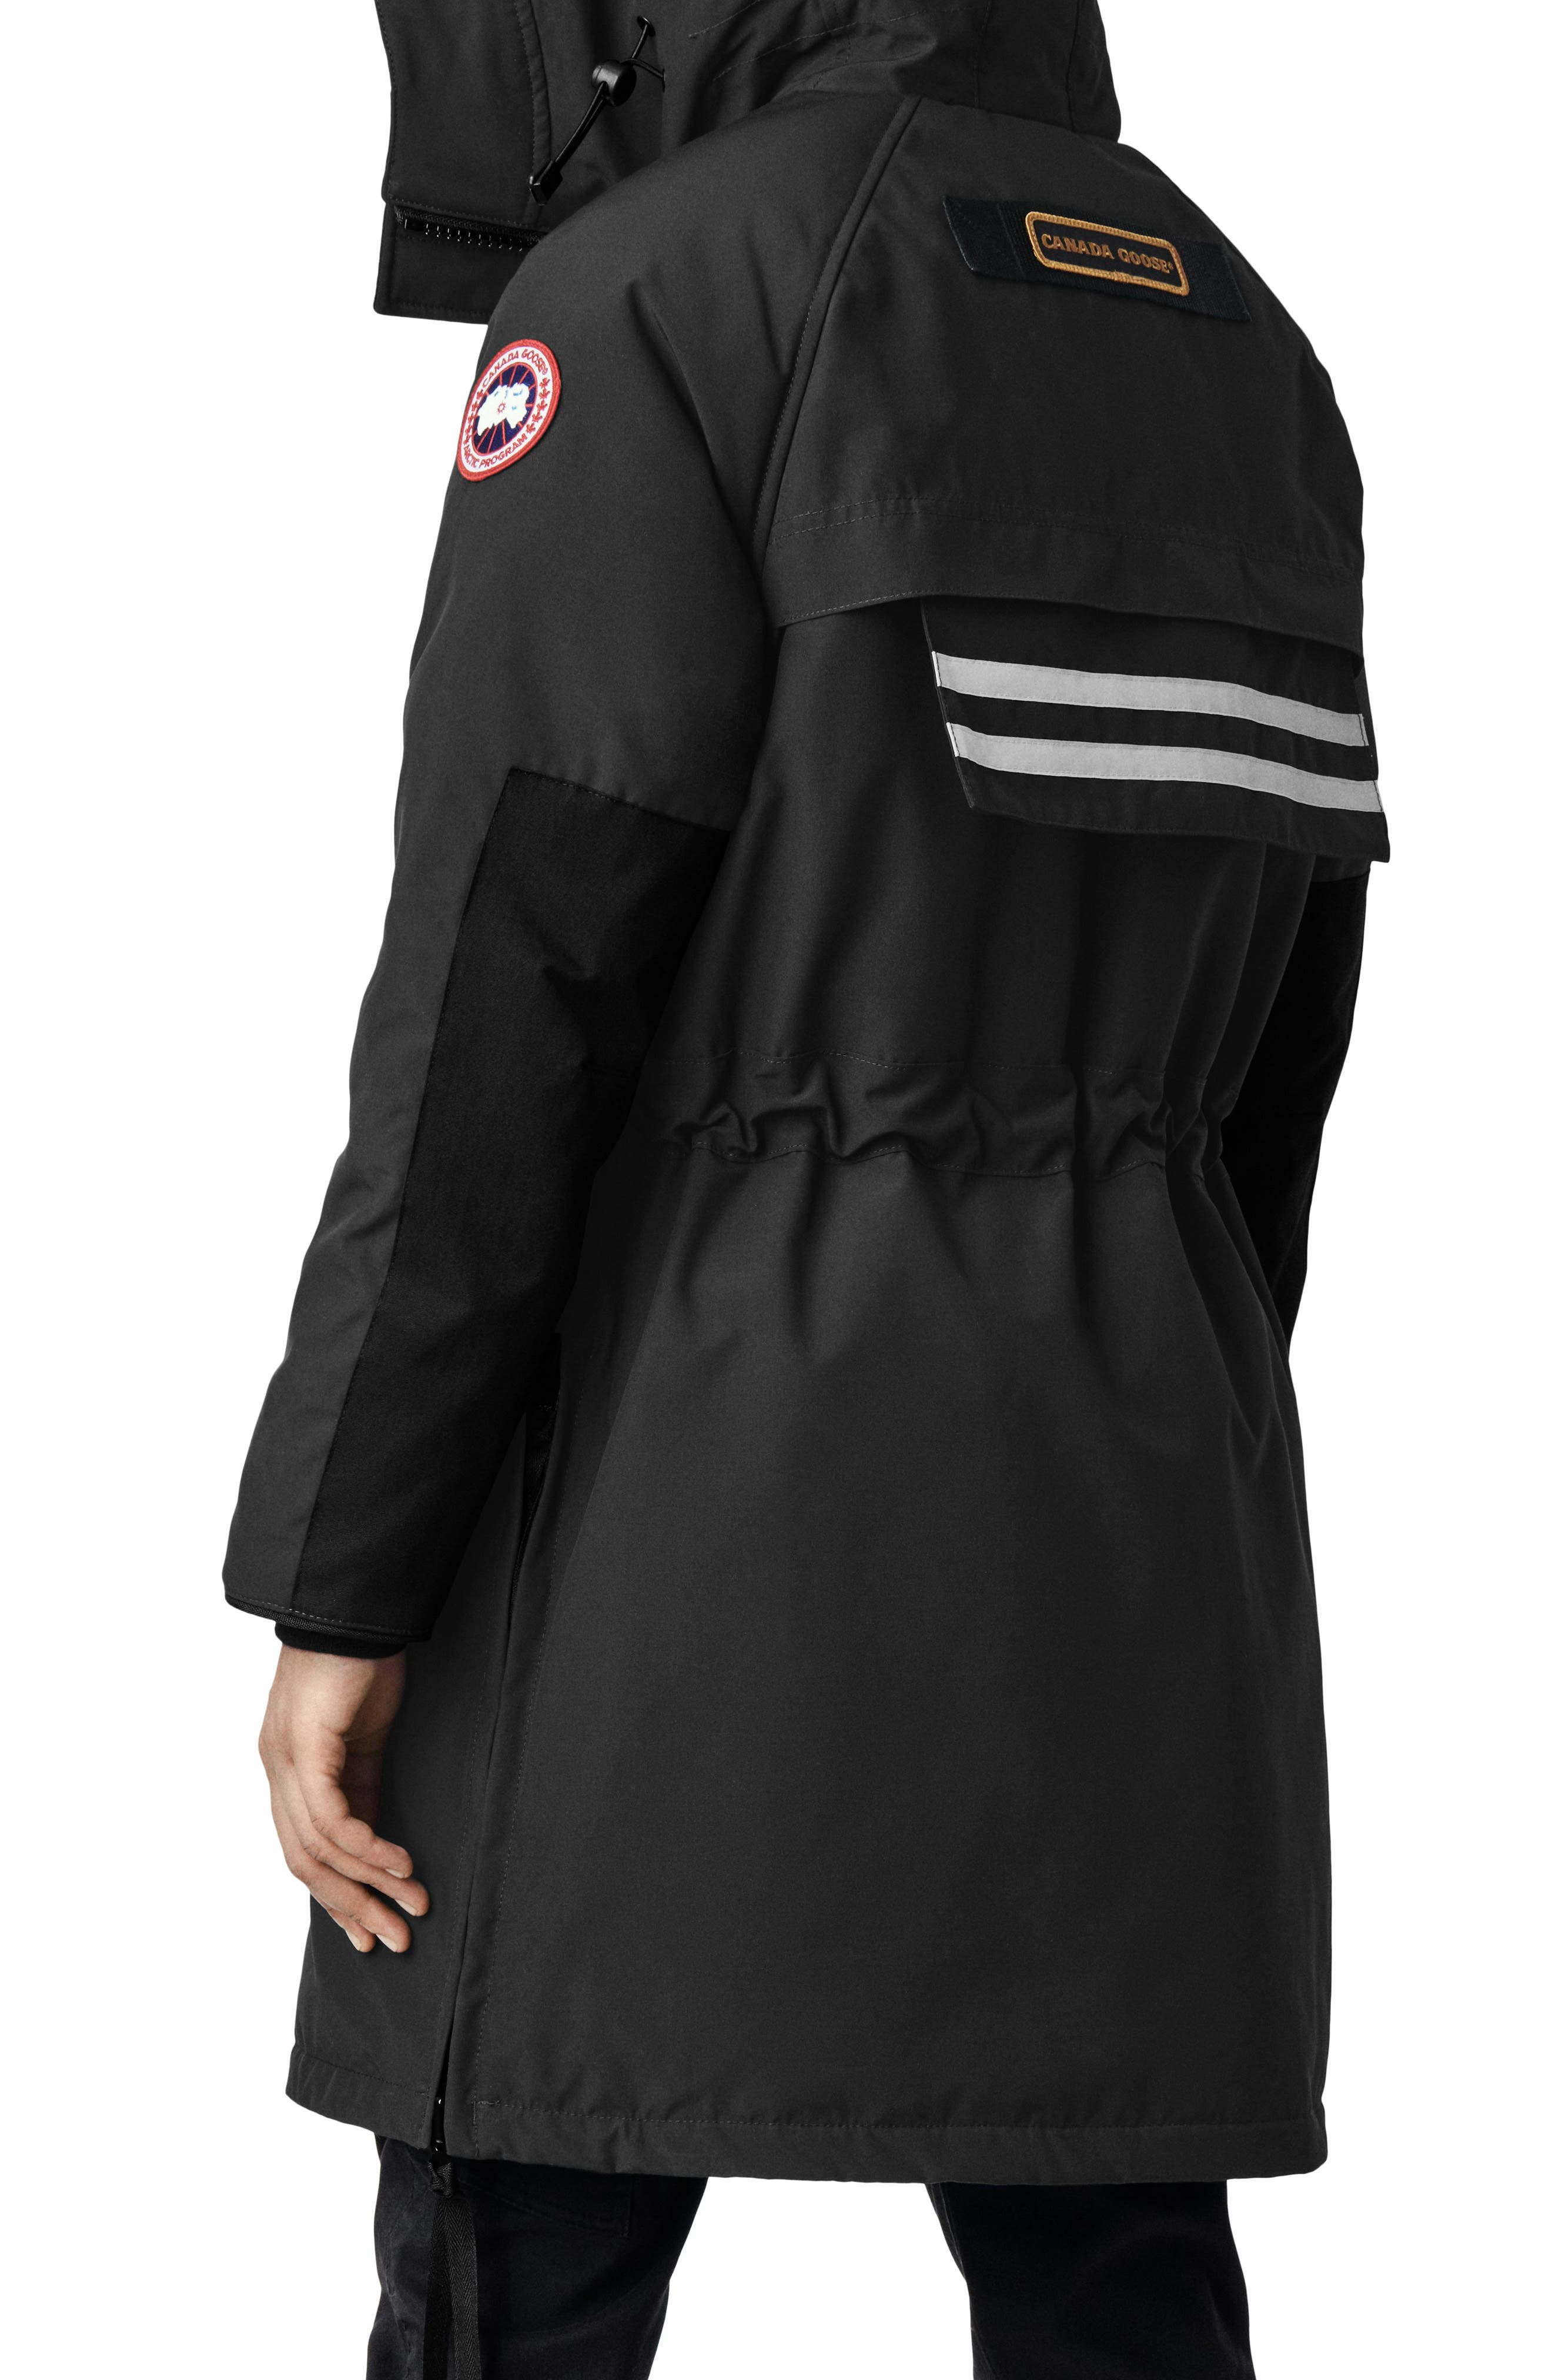 CANADA GOOSE, Olympia Down Parka, Alternate thumbnail 2, color, BLACK